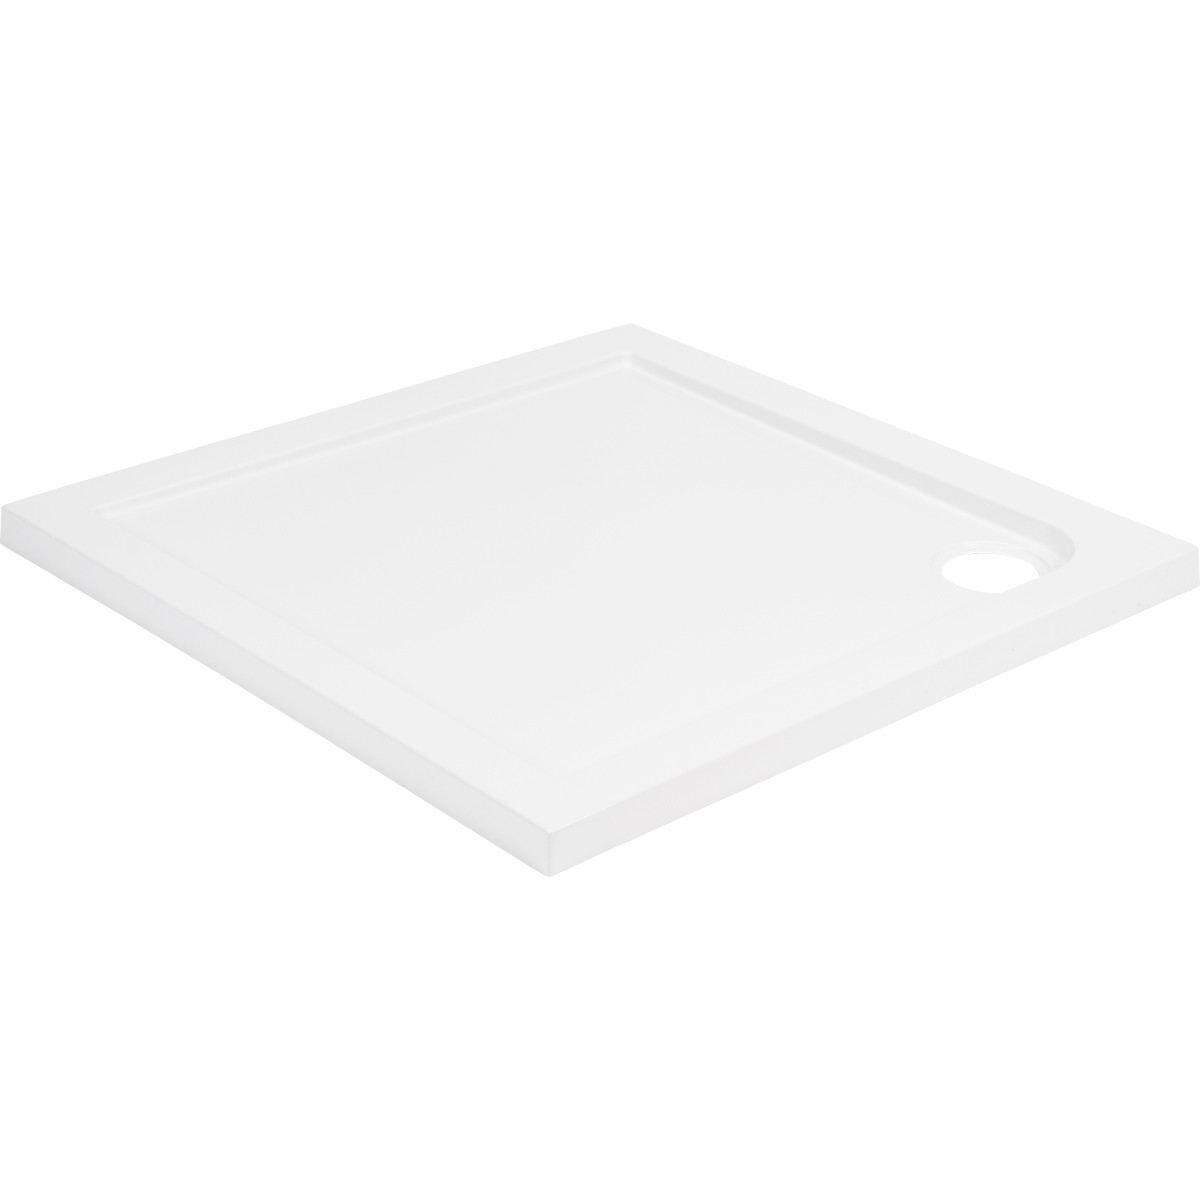 40mm Pearlstone 760 x 760 Square Shower Tray